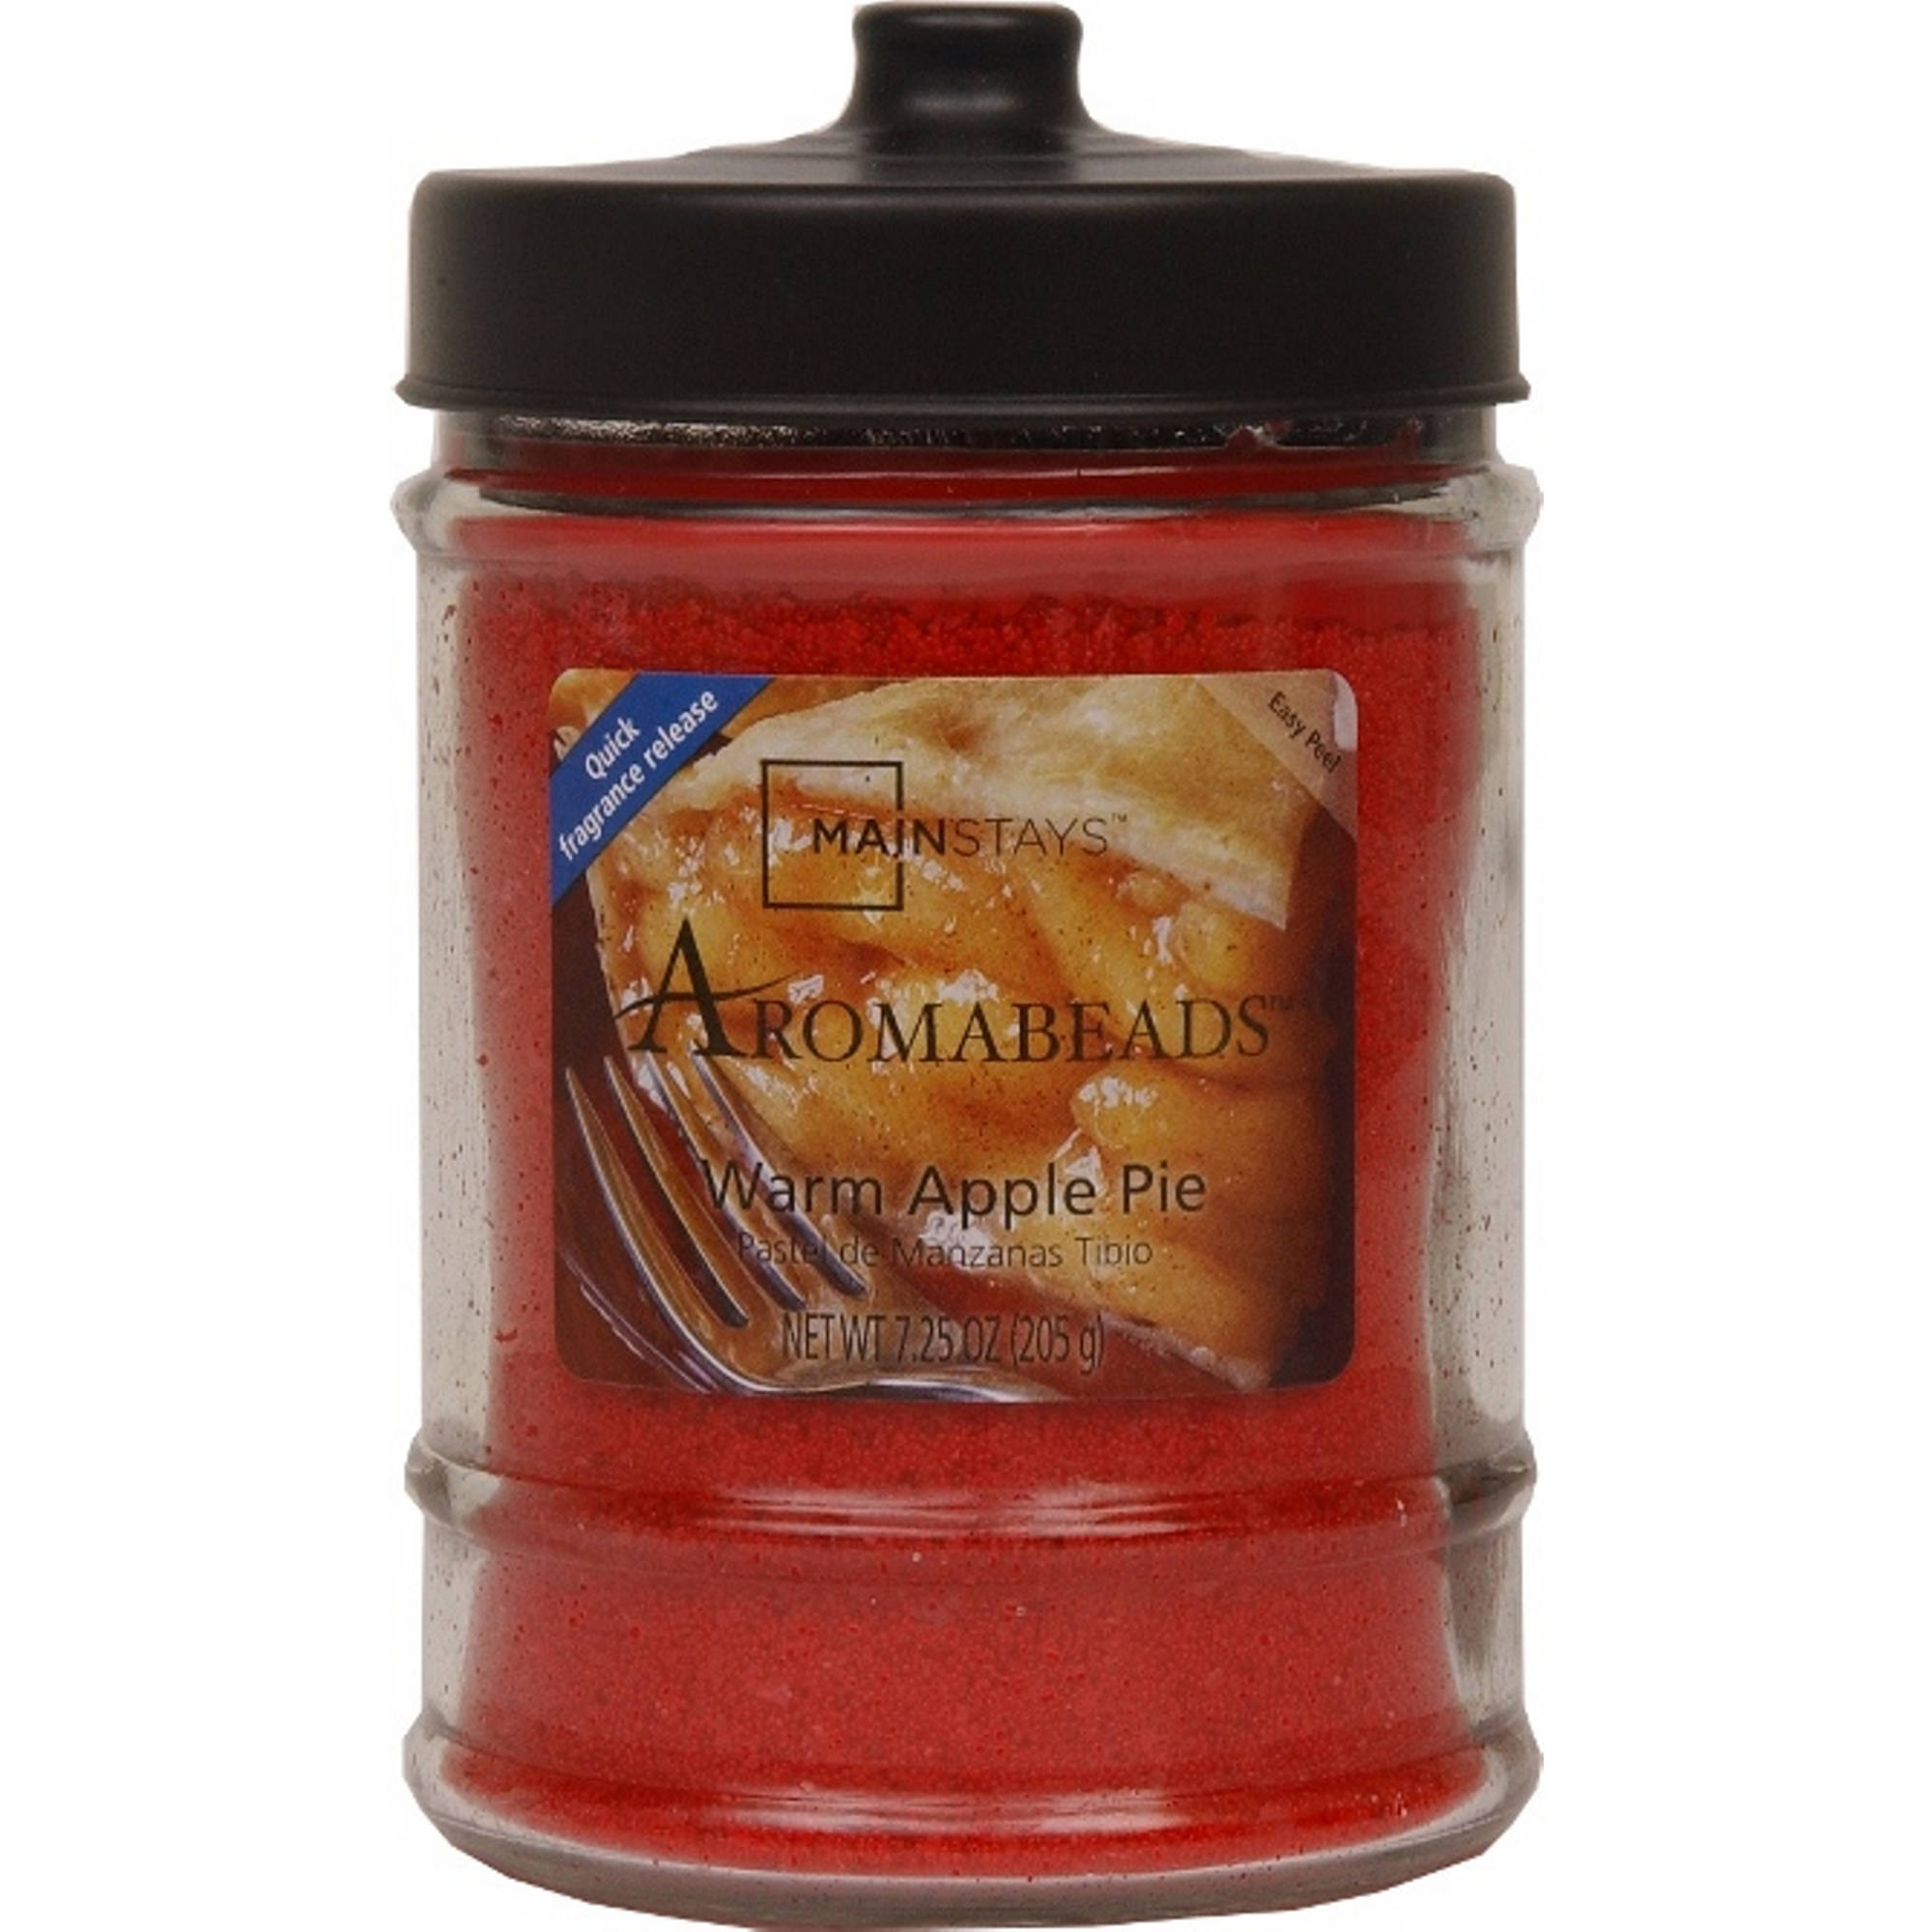 Mainstays 7.25-Ounce Aromabeads Candle, Warm Apple Pie